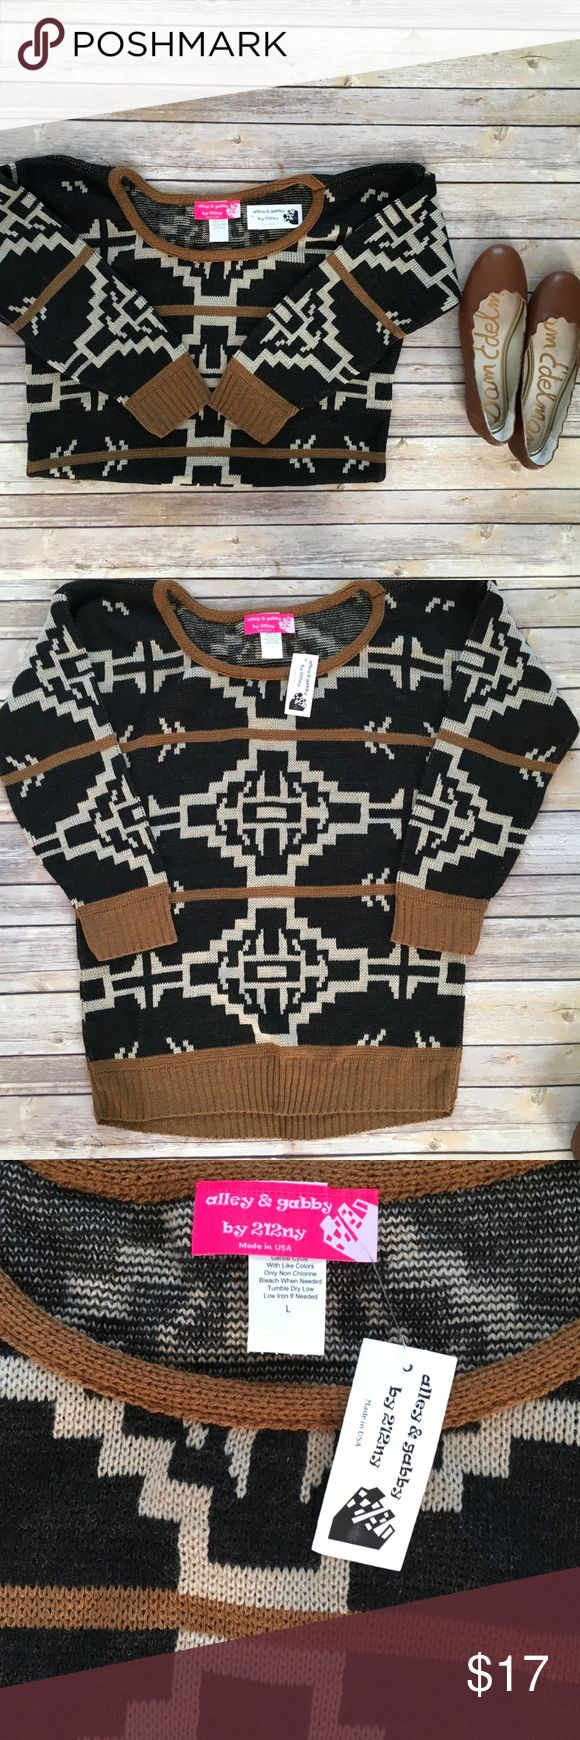 Alley&Gabby a Tribal Print Sweater Size Large Alley&Gabby a Tribal Print Sweater Size Large NWT **Garments Will Be Steamed Before Shipping** Alley&Gabby Sweaters Crew & Scoop Necks